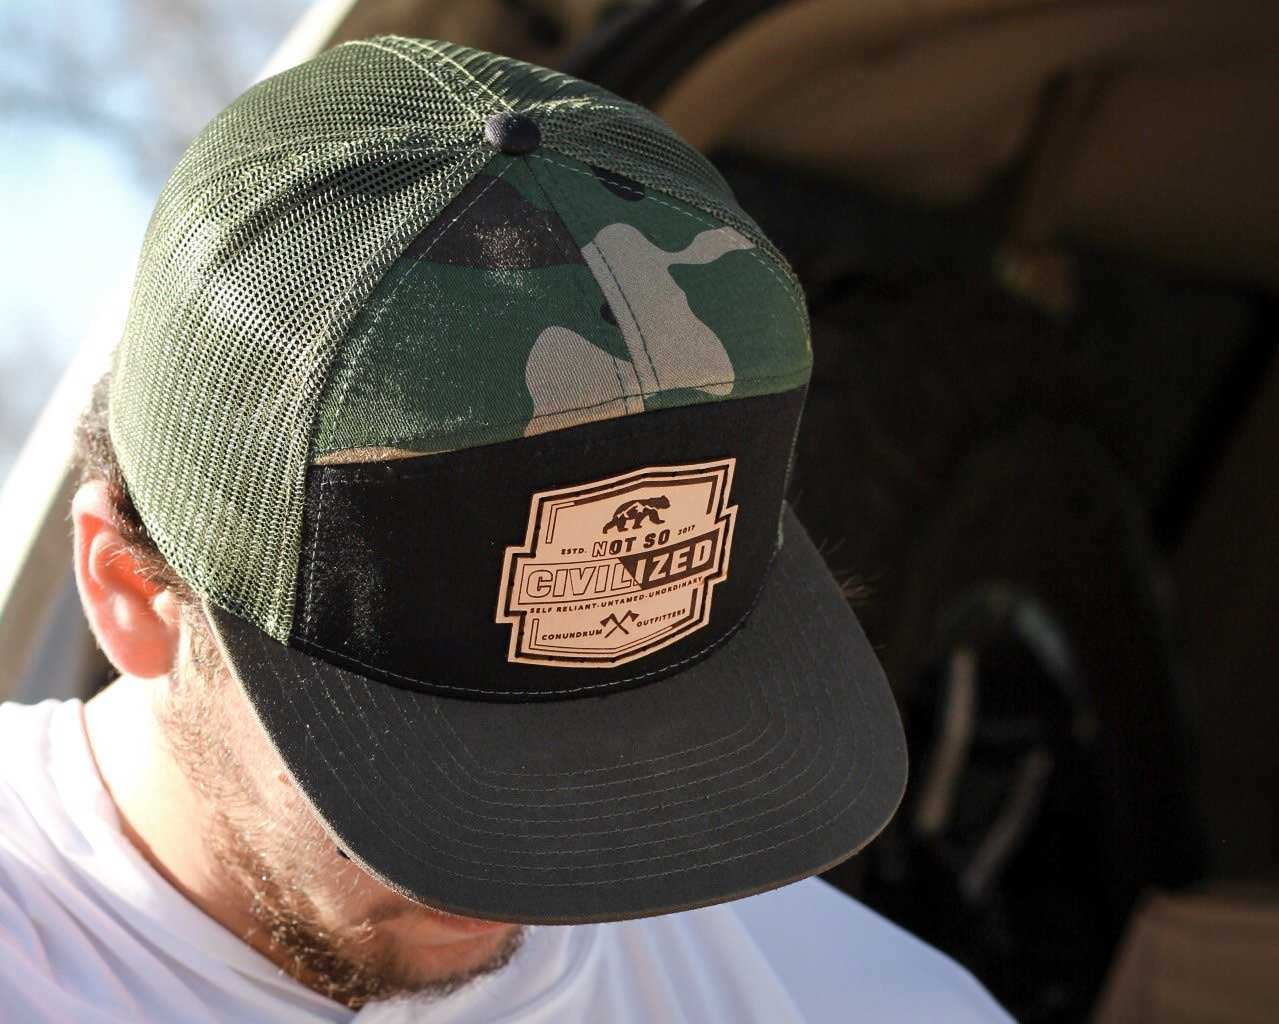 Not So Civilized High Profile Trucker Hat Camo